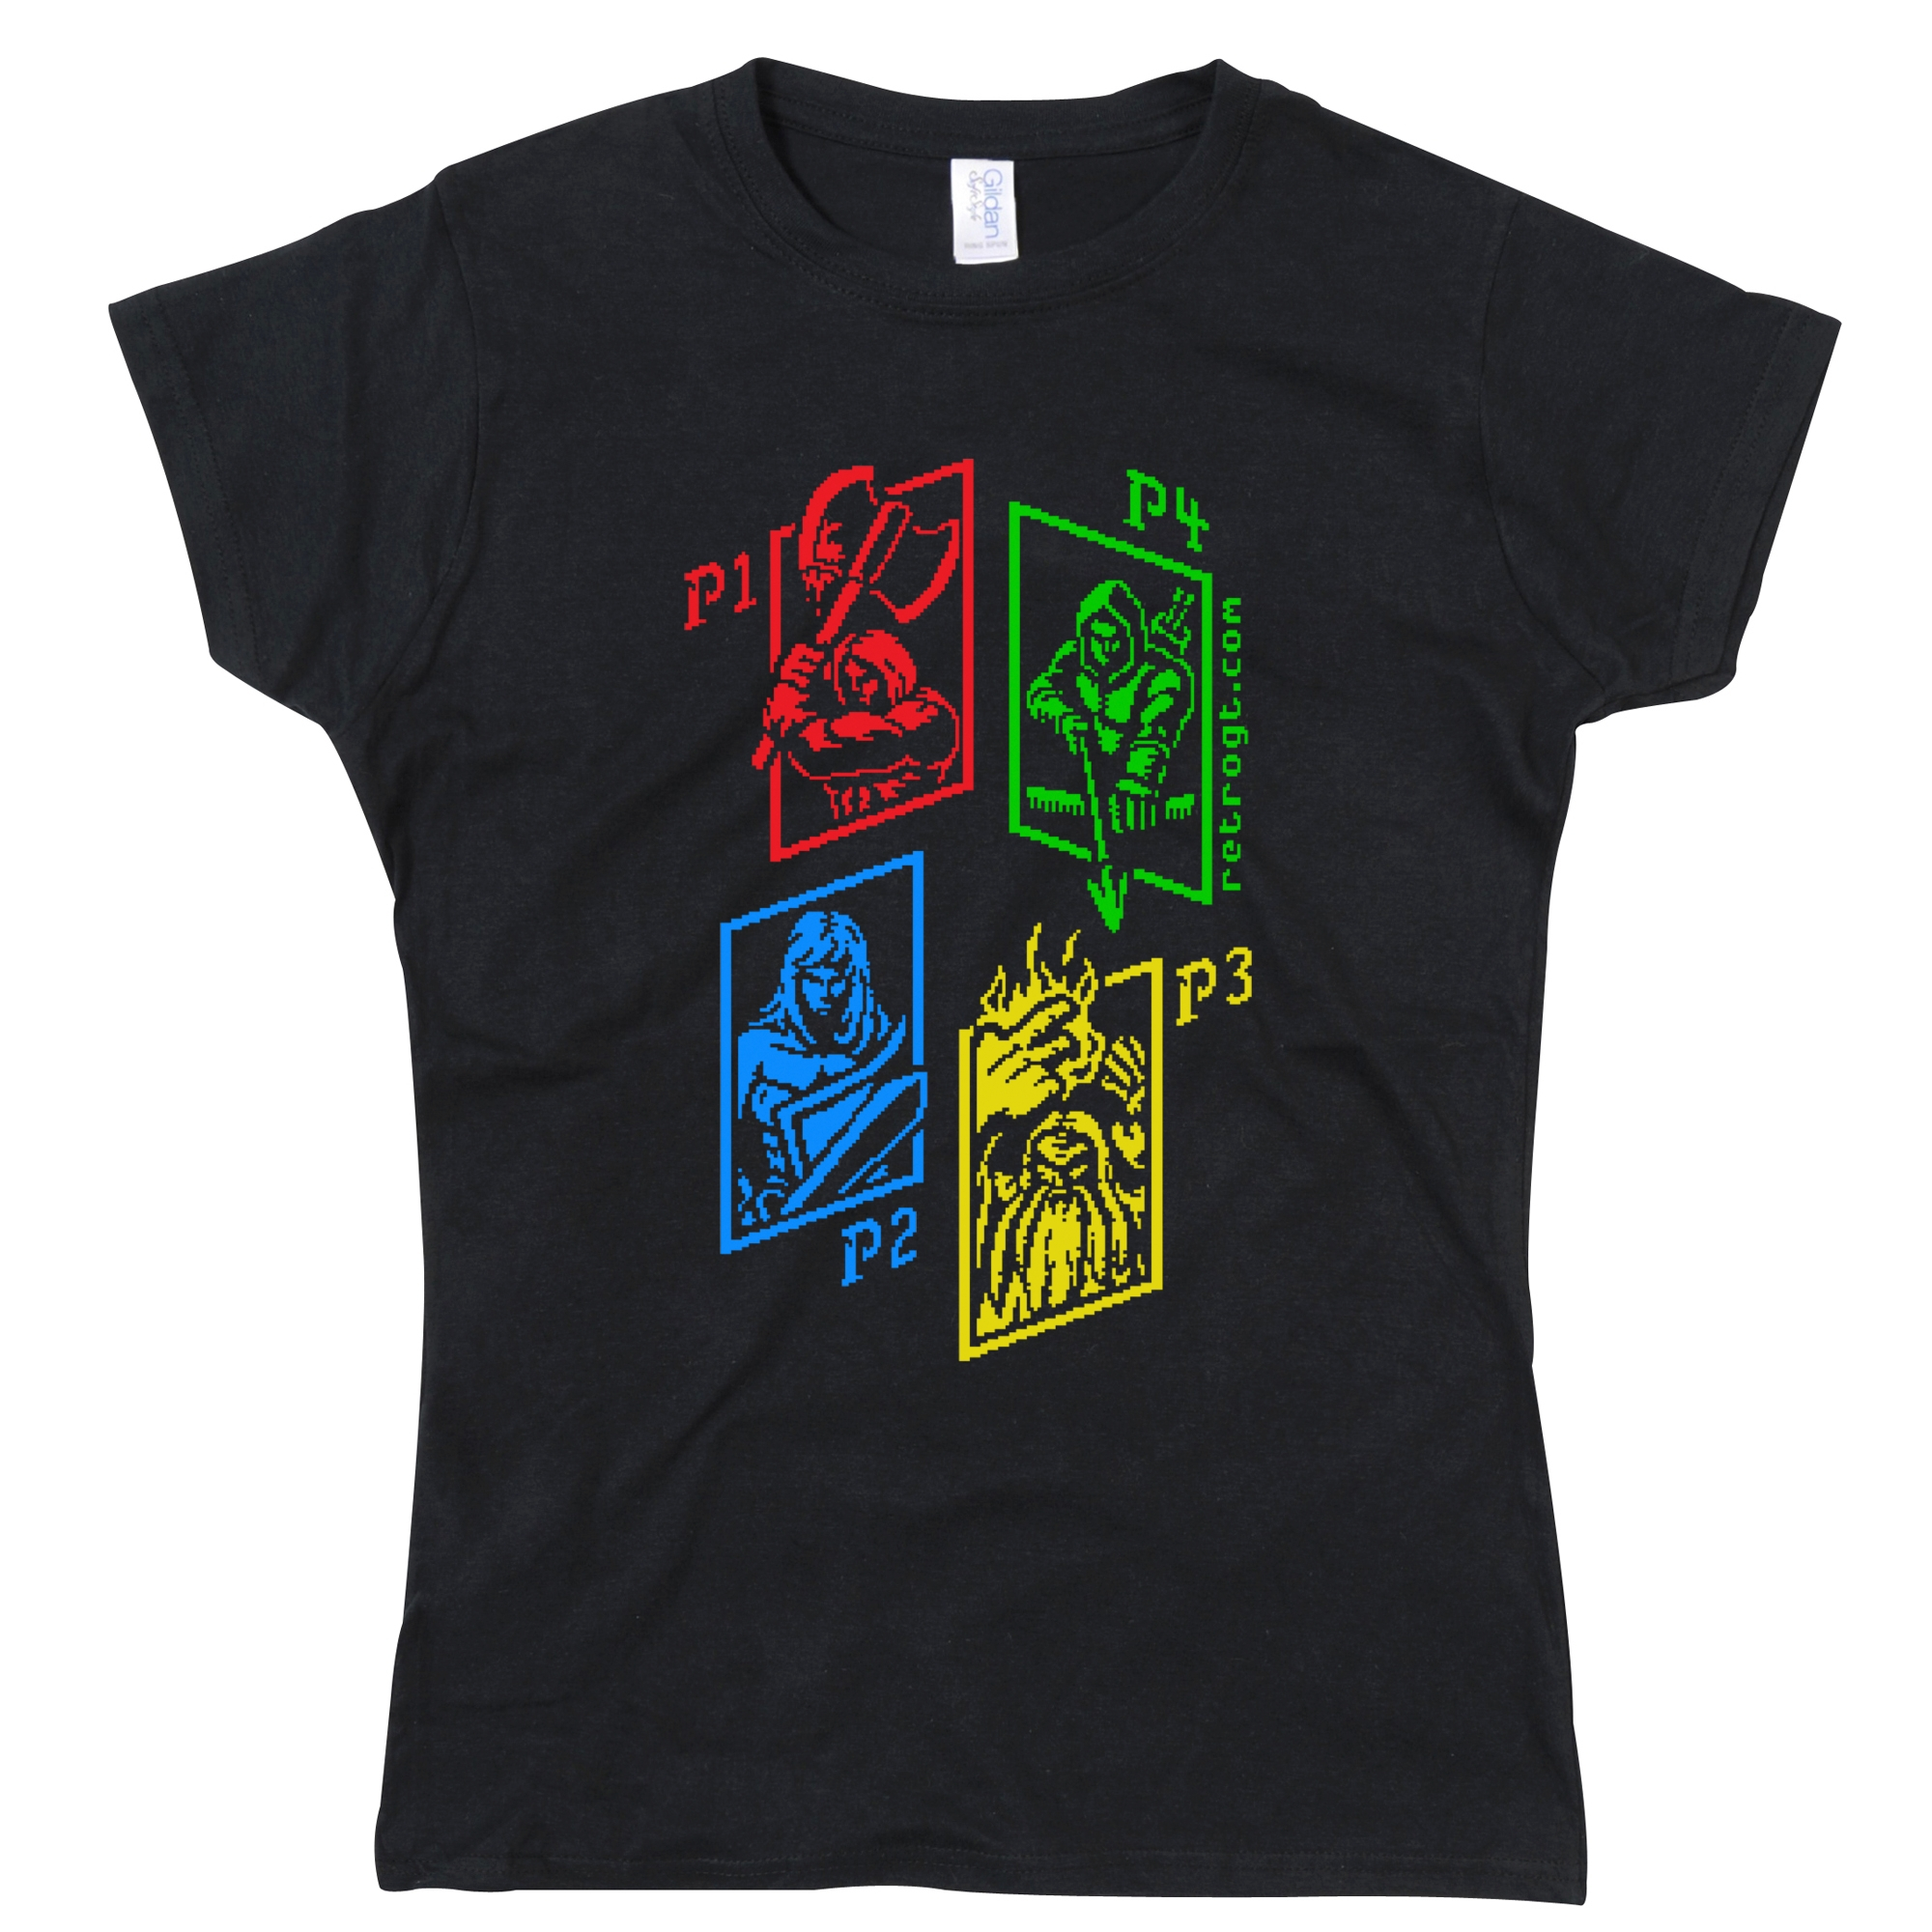 Alternative photo: Dungeon Crawler Girls T-Shirt